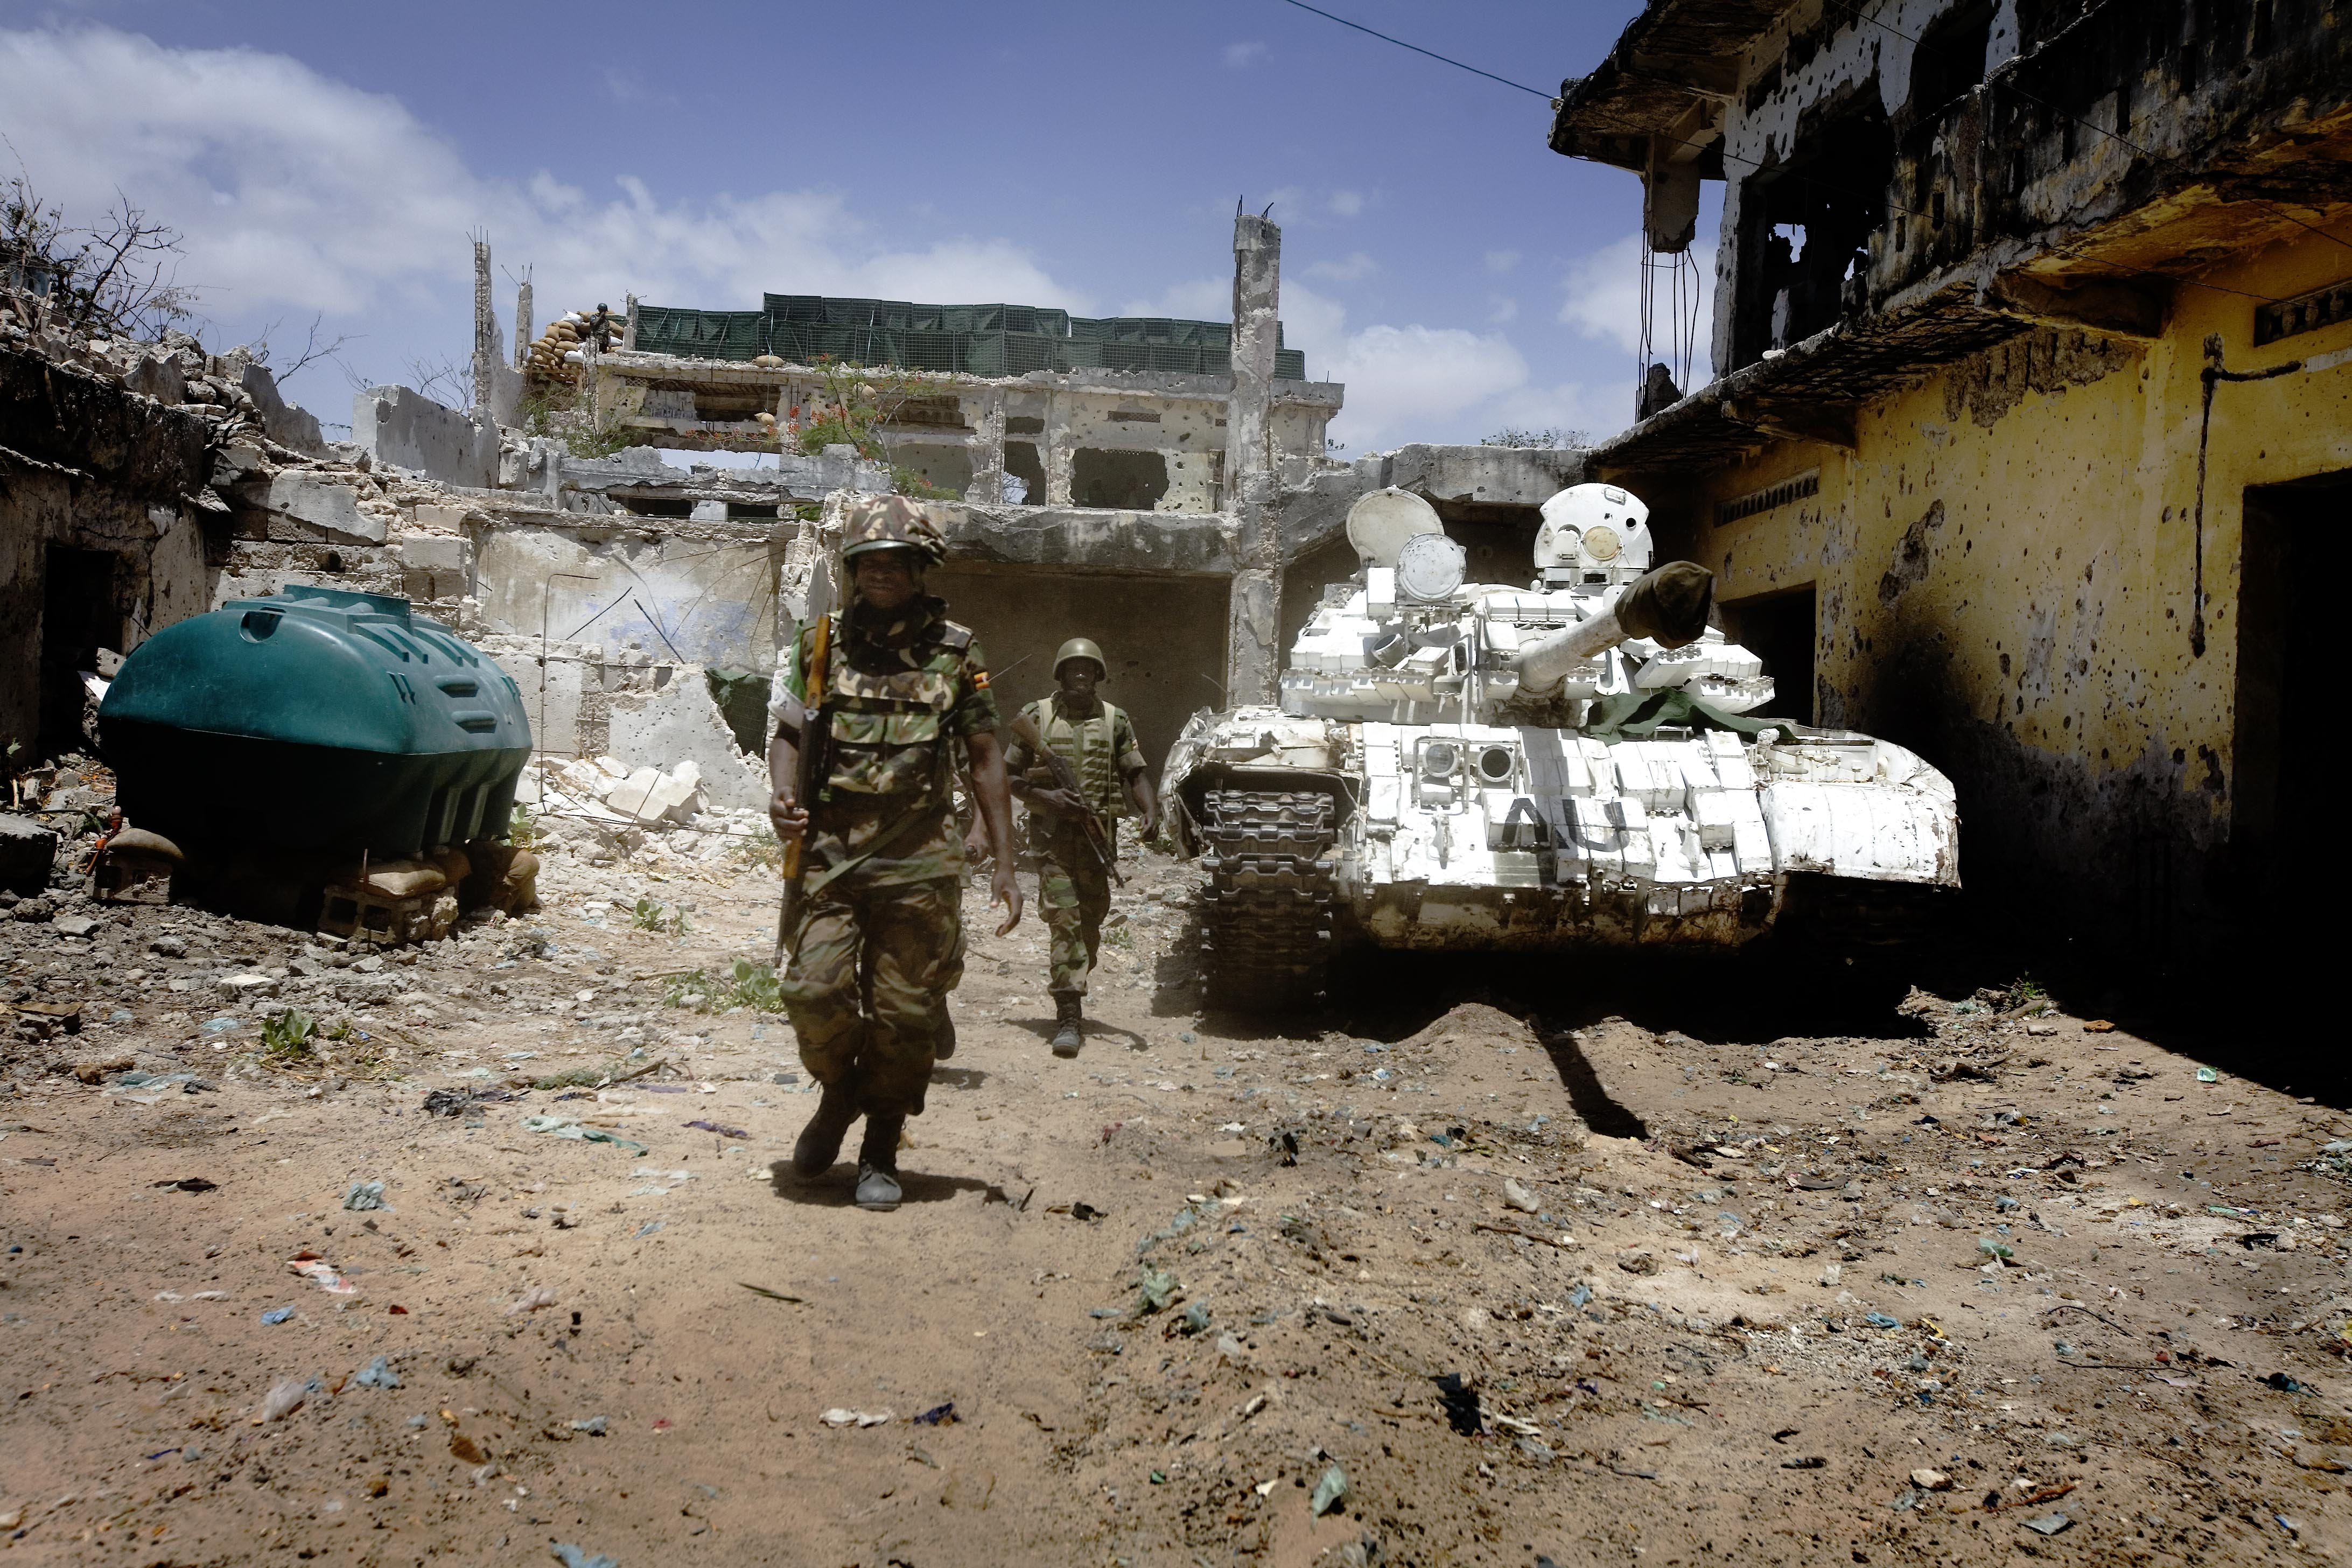 AU soldiers walk passed an AU tank in a house they have just taken from the control of Al Shabaab insurgents in Mogadishu, Somalia